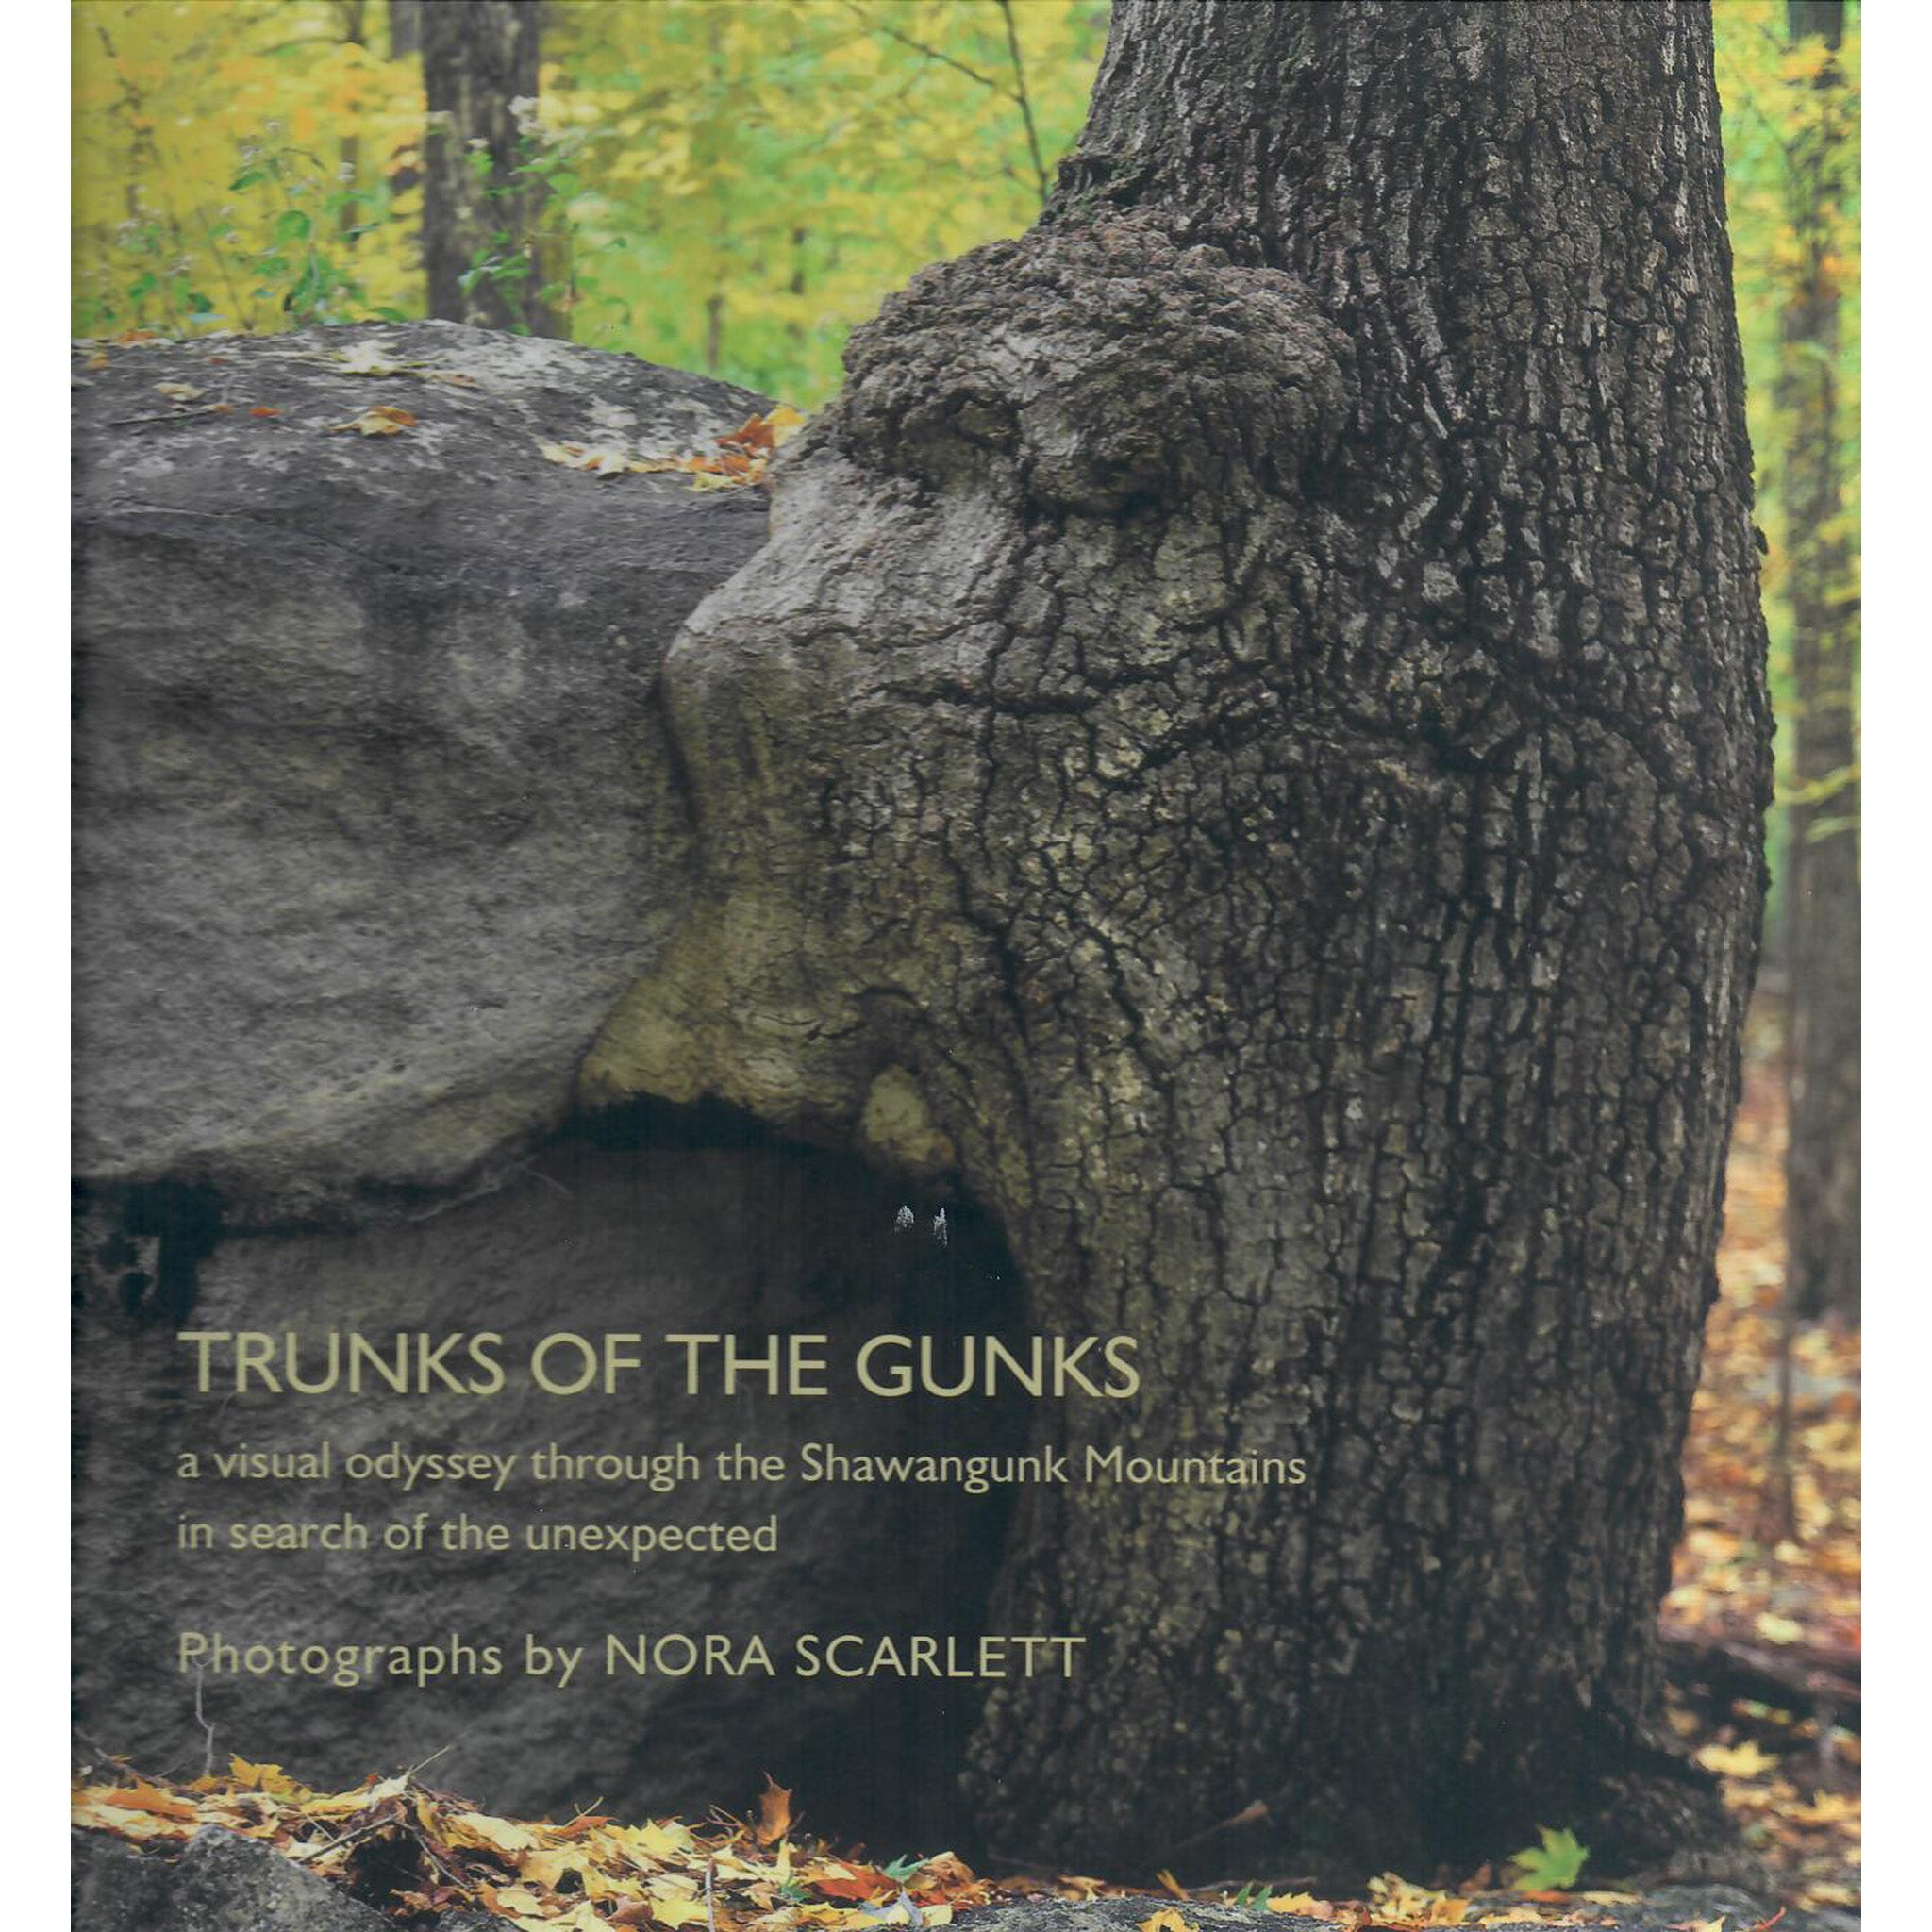 Trunks of the Gunks